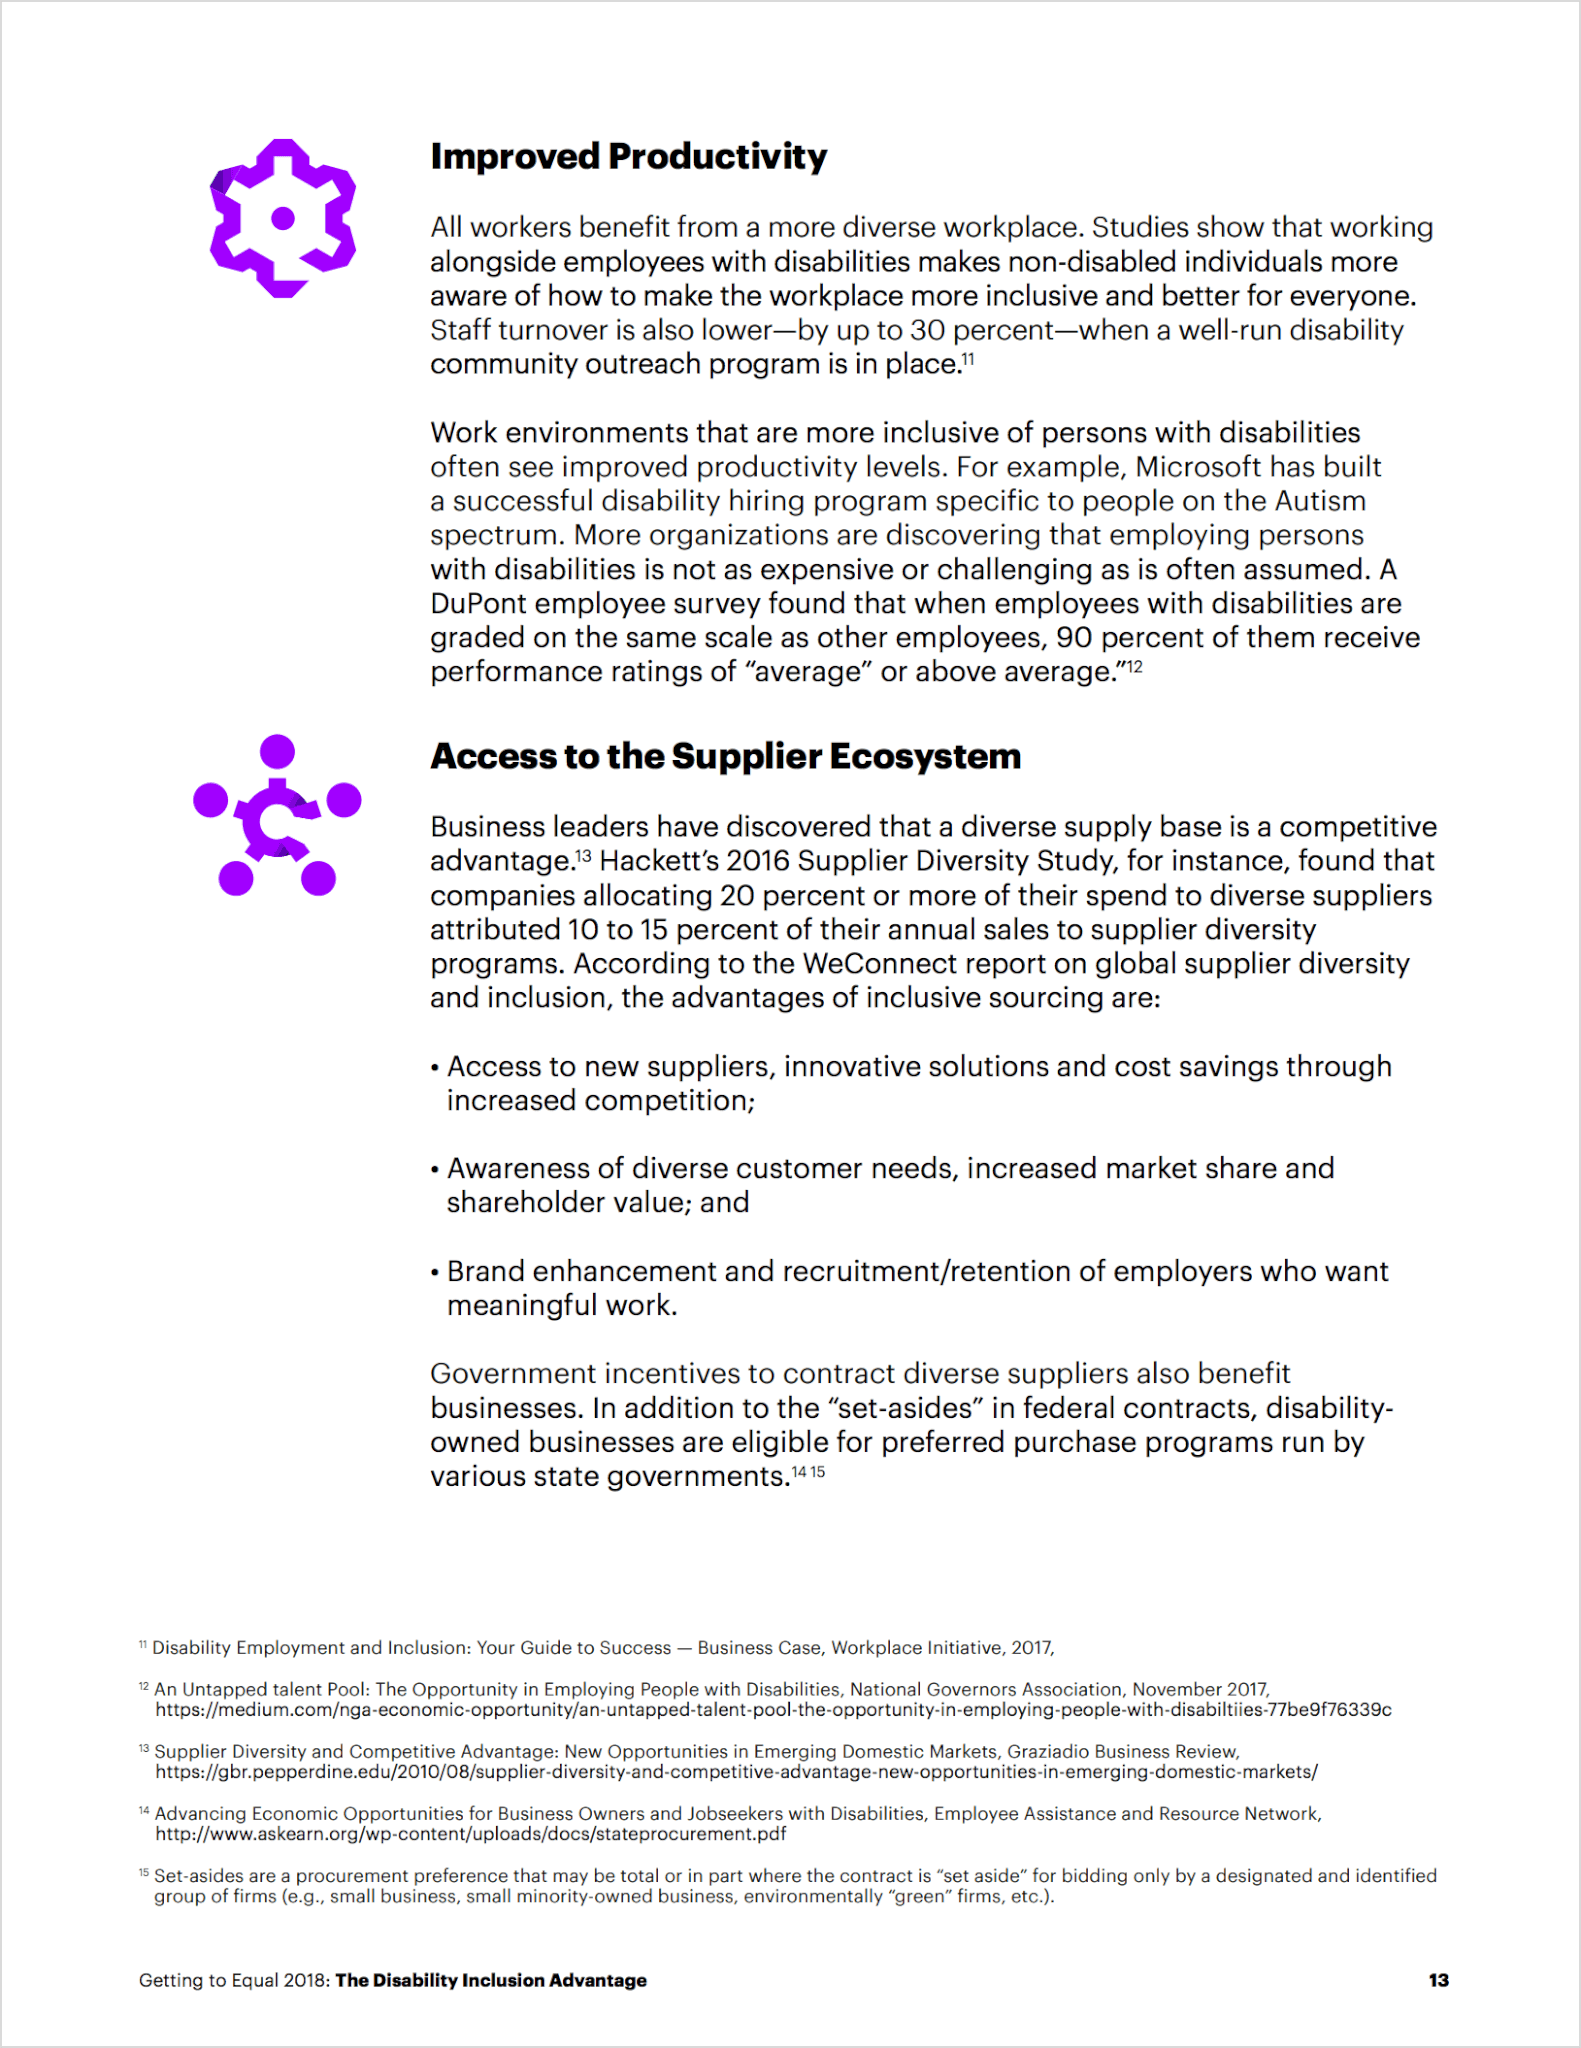 accenture page 12